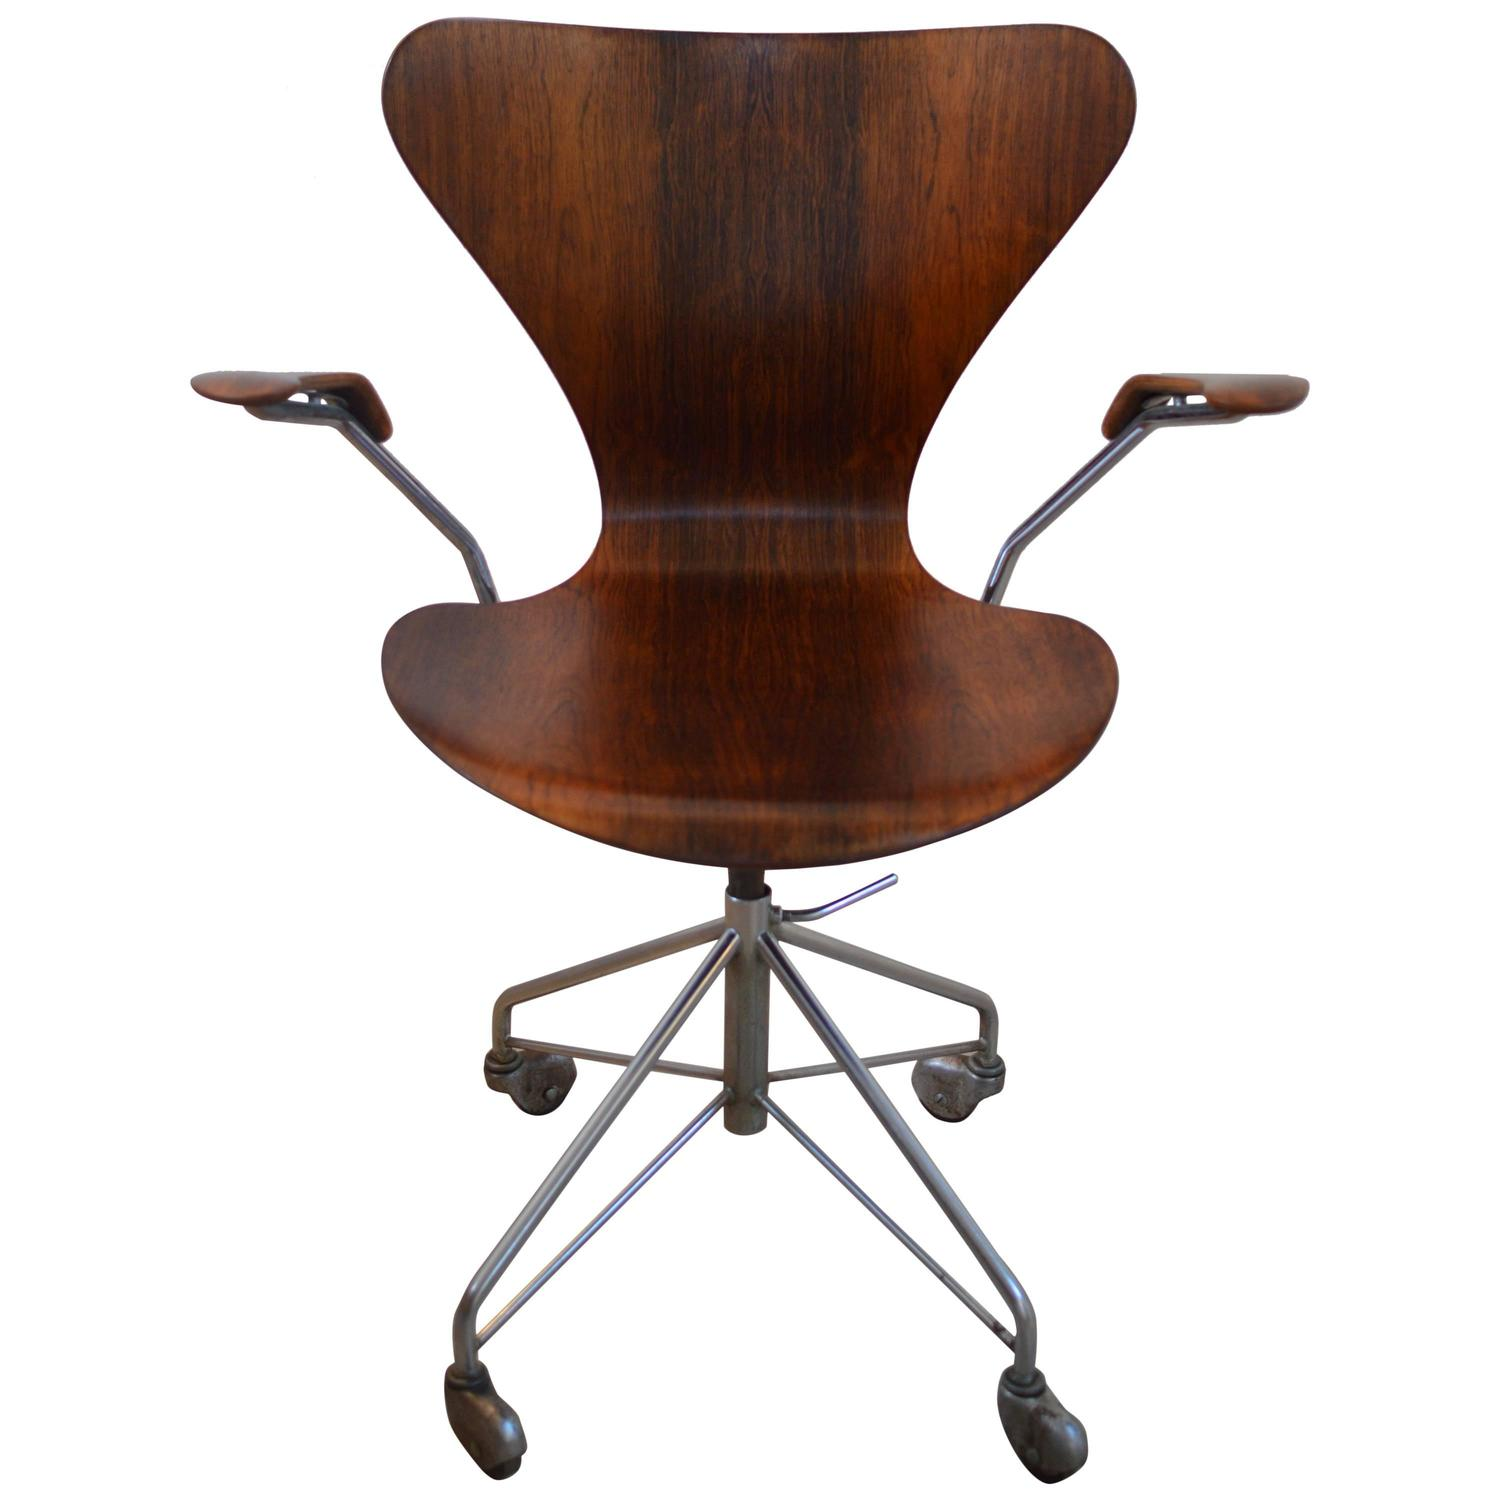 Rare arne jacobsen rosewood swivel desk chair with arms at for Jacobsen chair